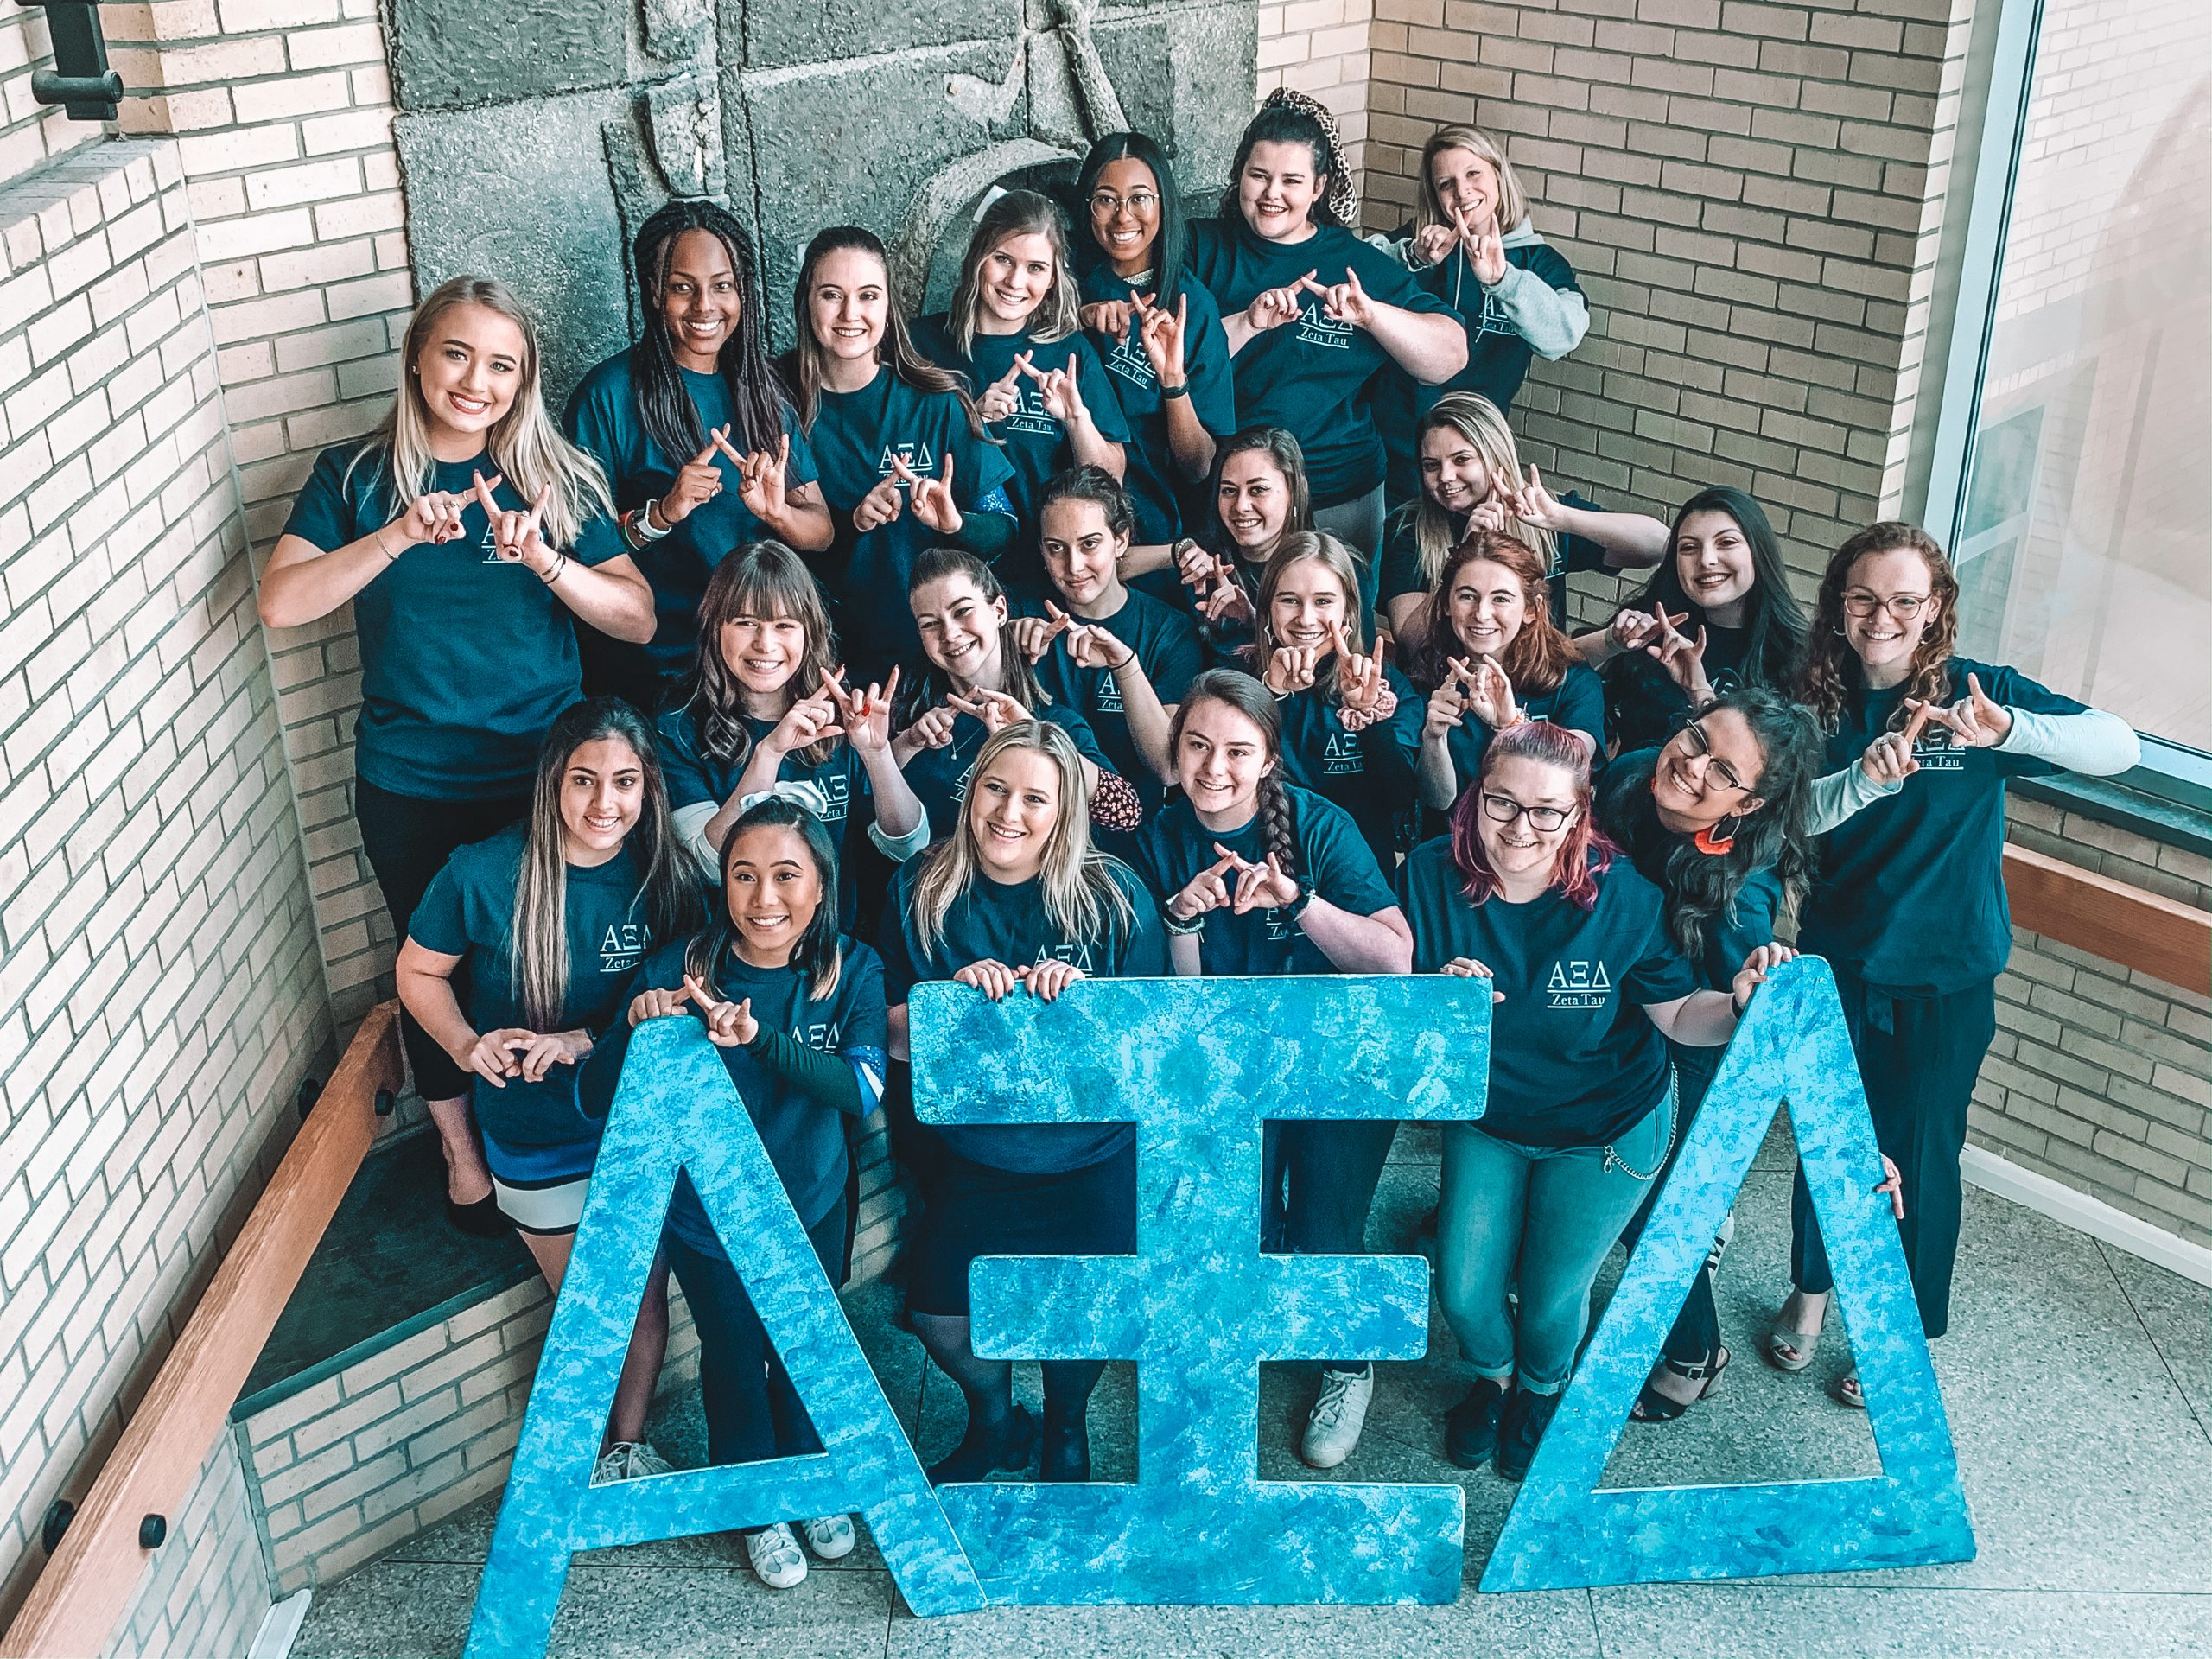 Women of Alpha Xi Delta Sorority